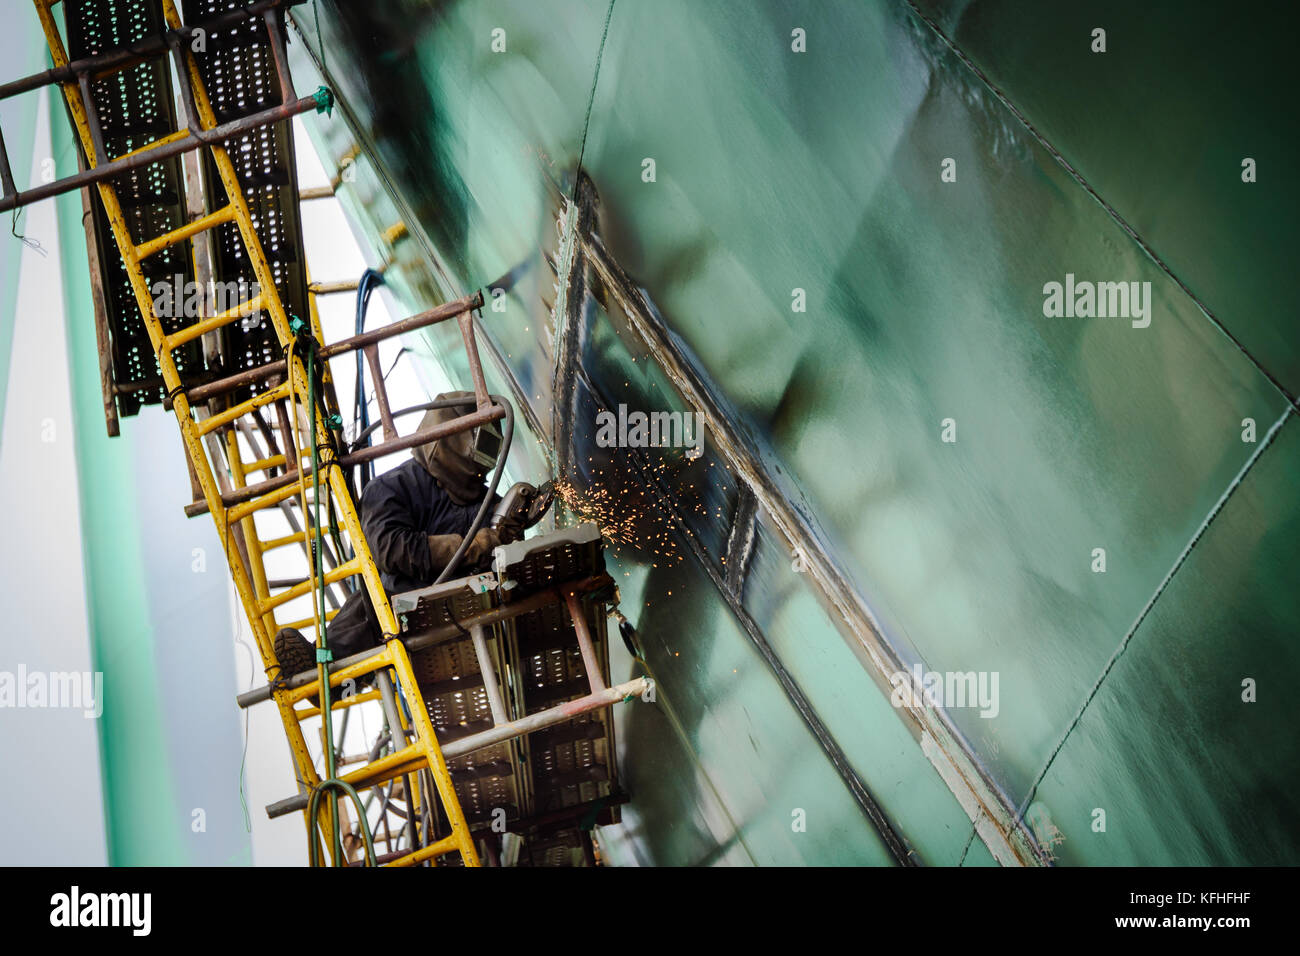 Ship under construction. Welding works. Cam Rahn shipyard, Vietnam. Stock Photo